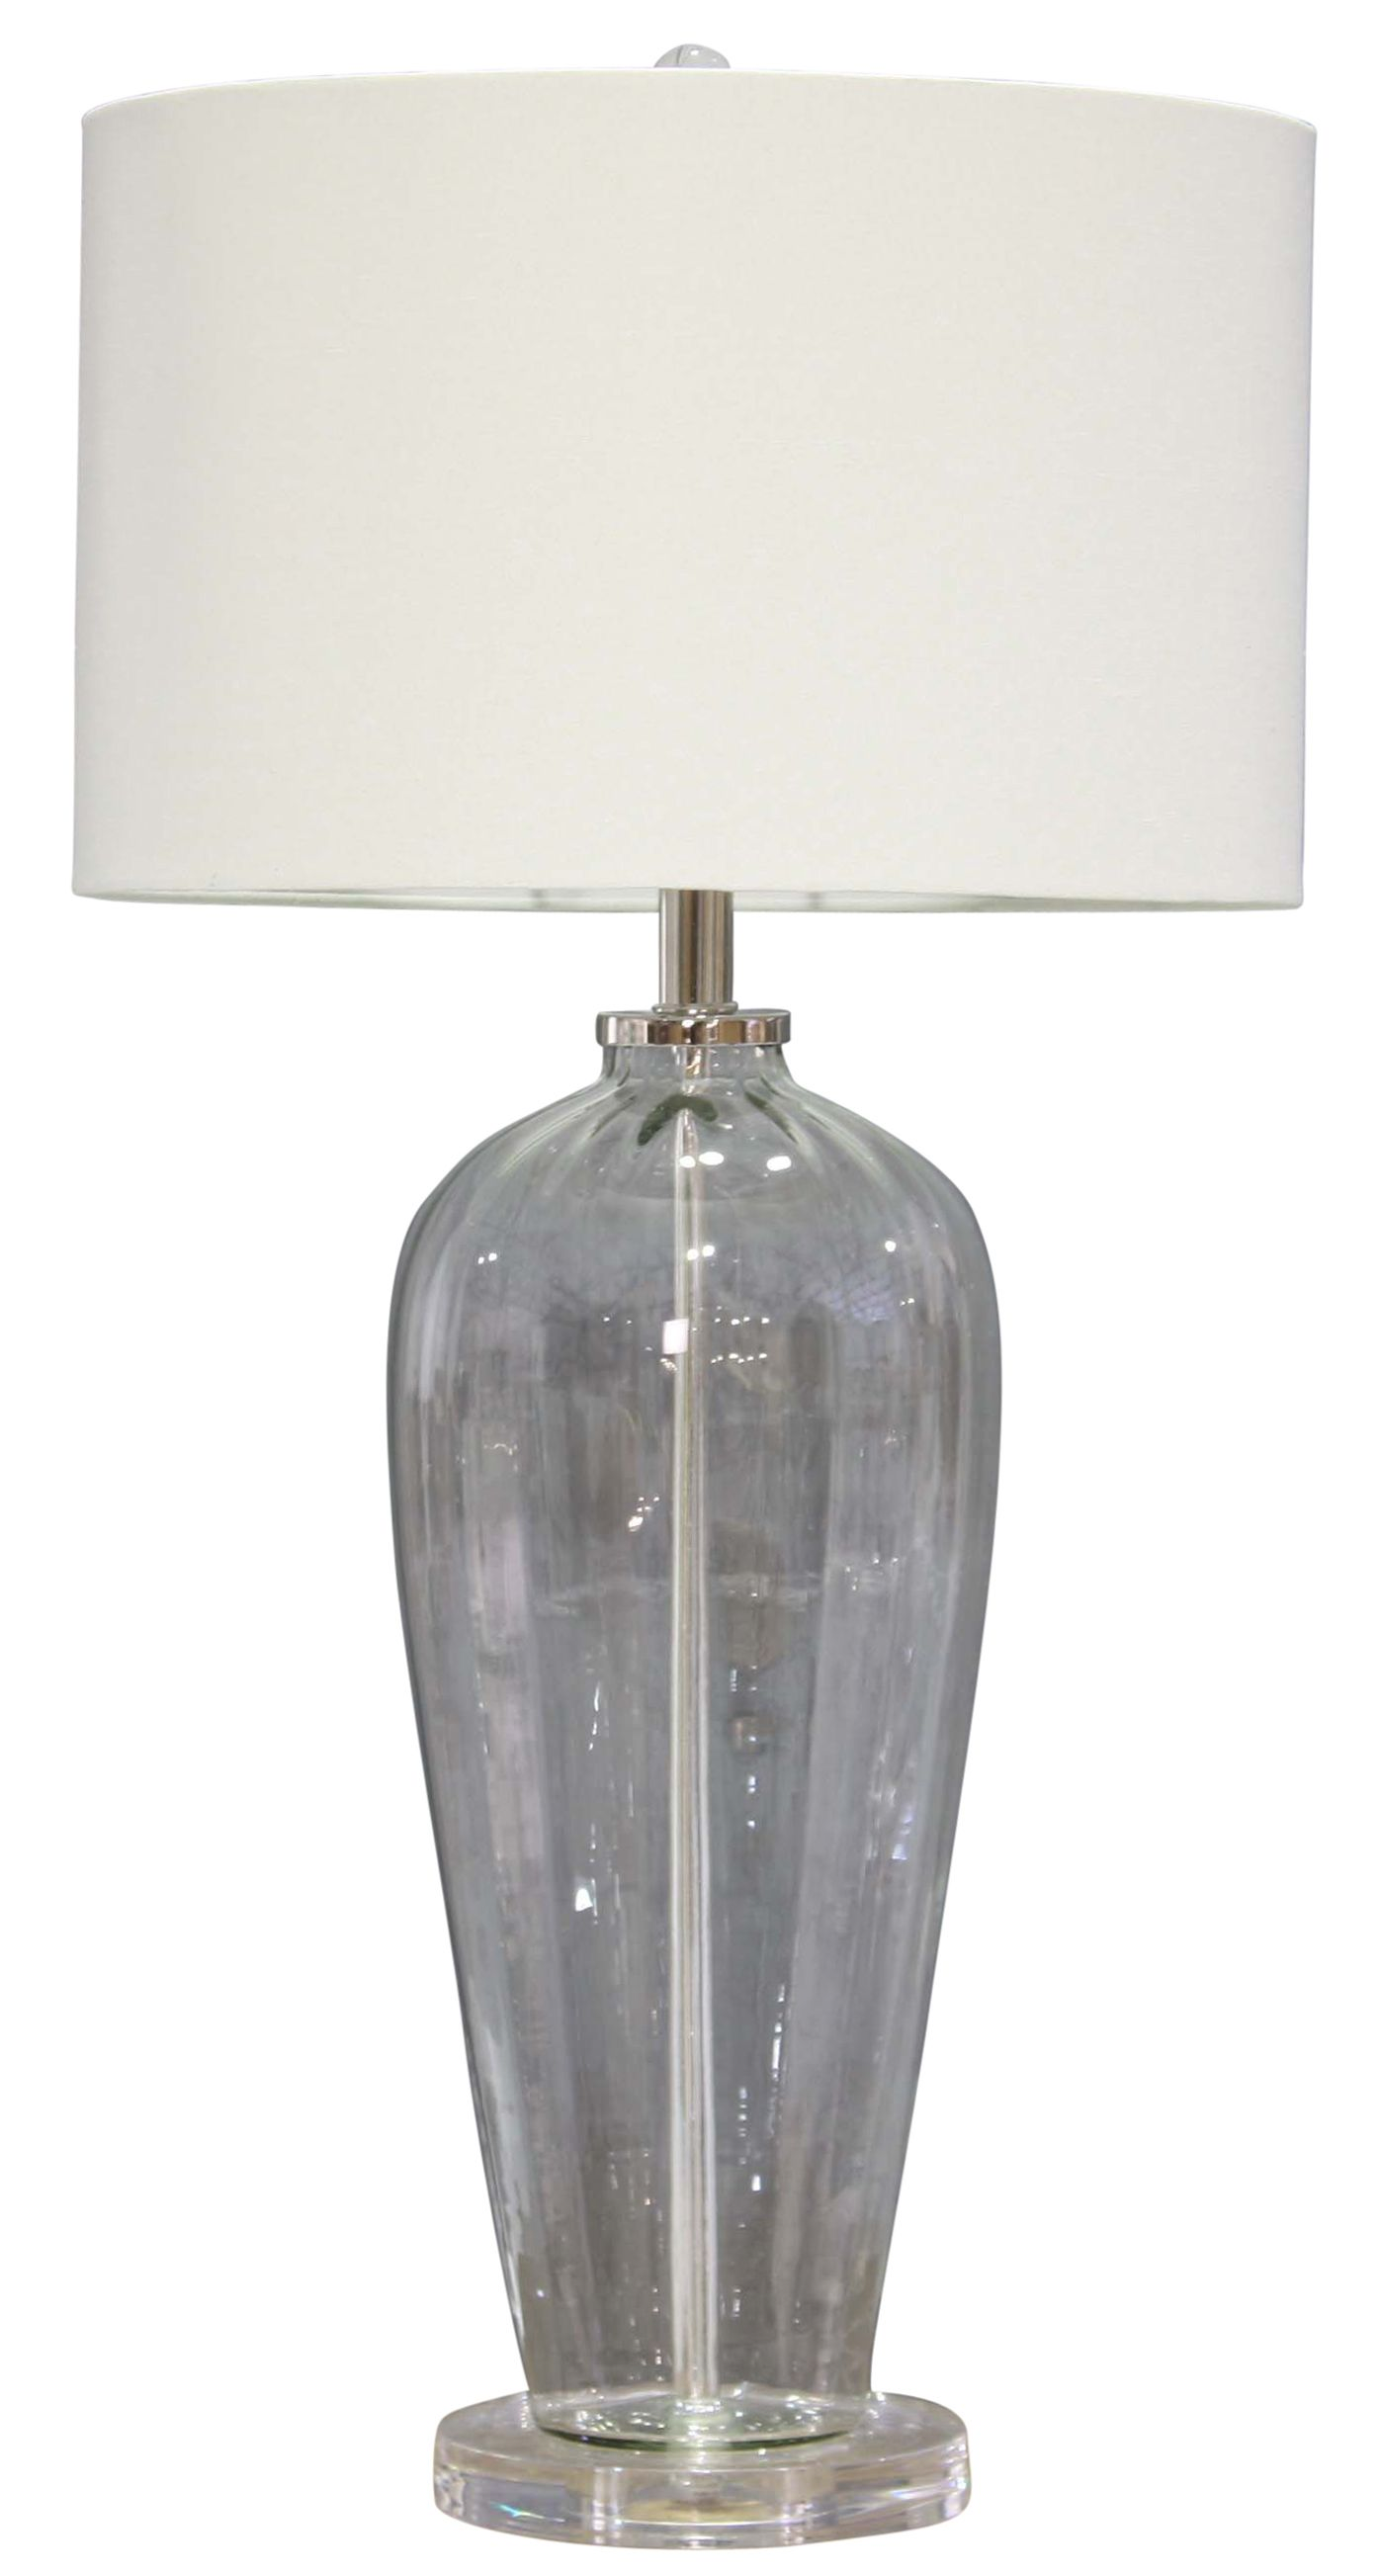 Lamp From Loft Living Gardenandhomecoza Pages